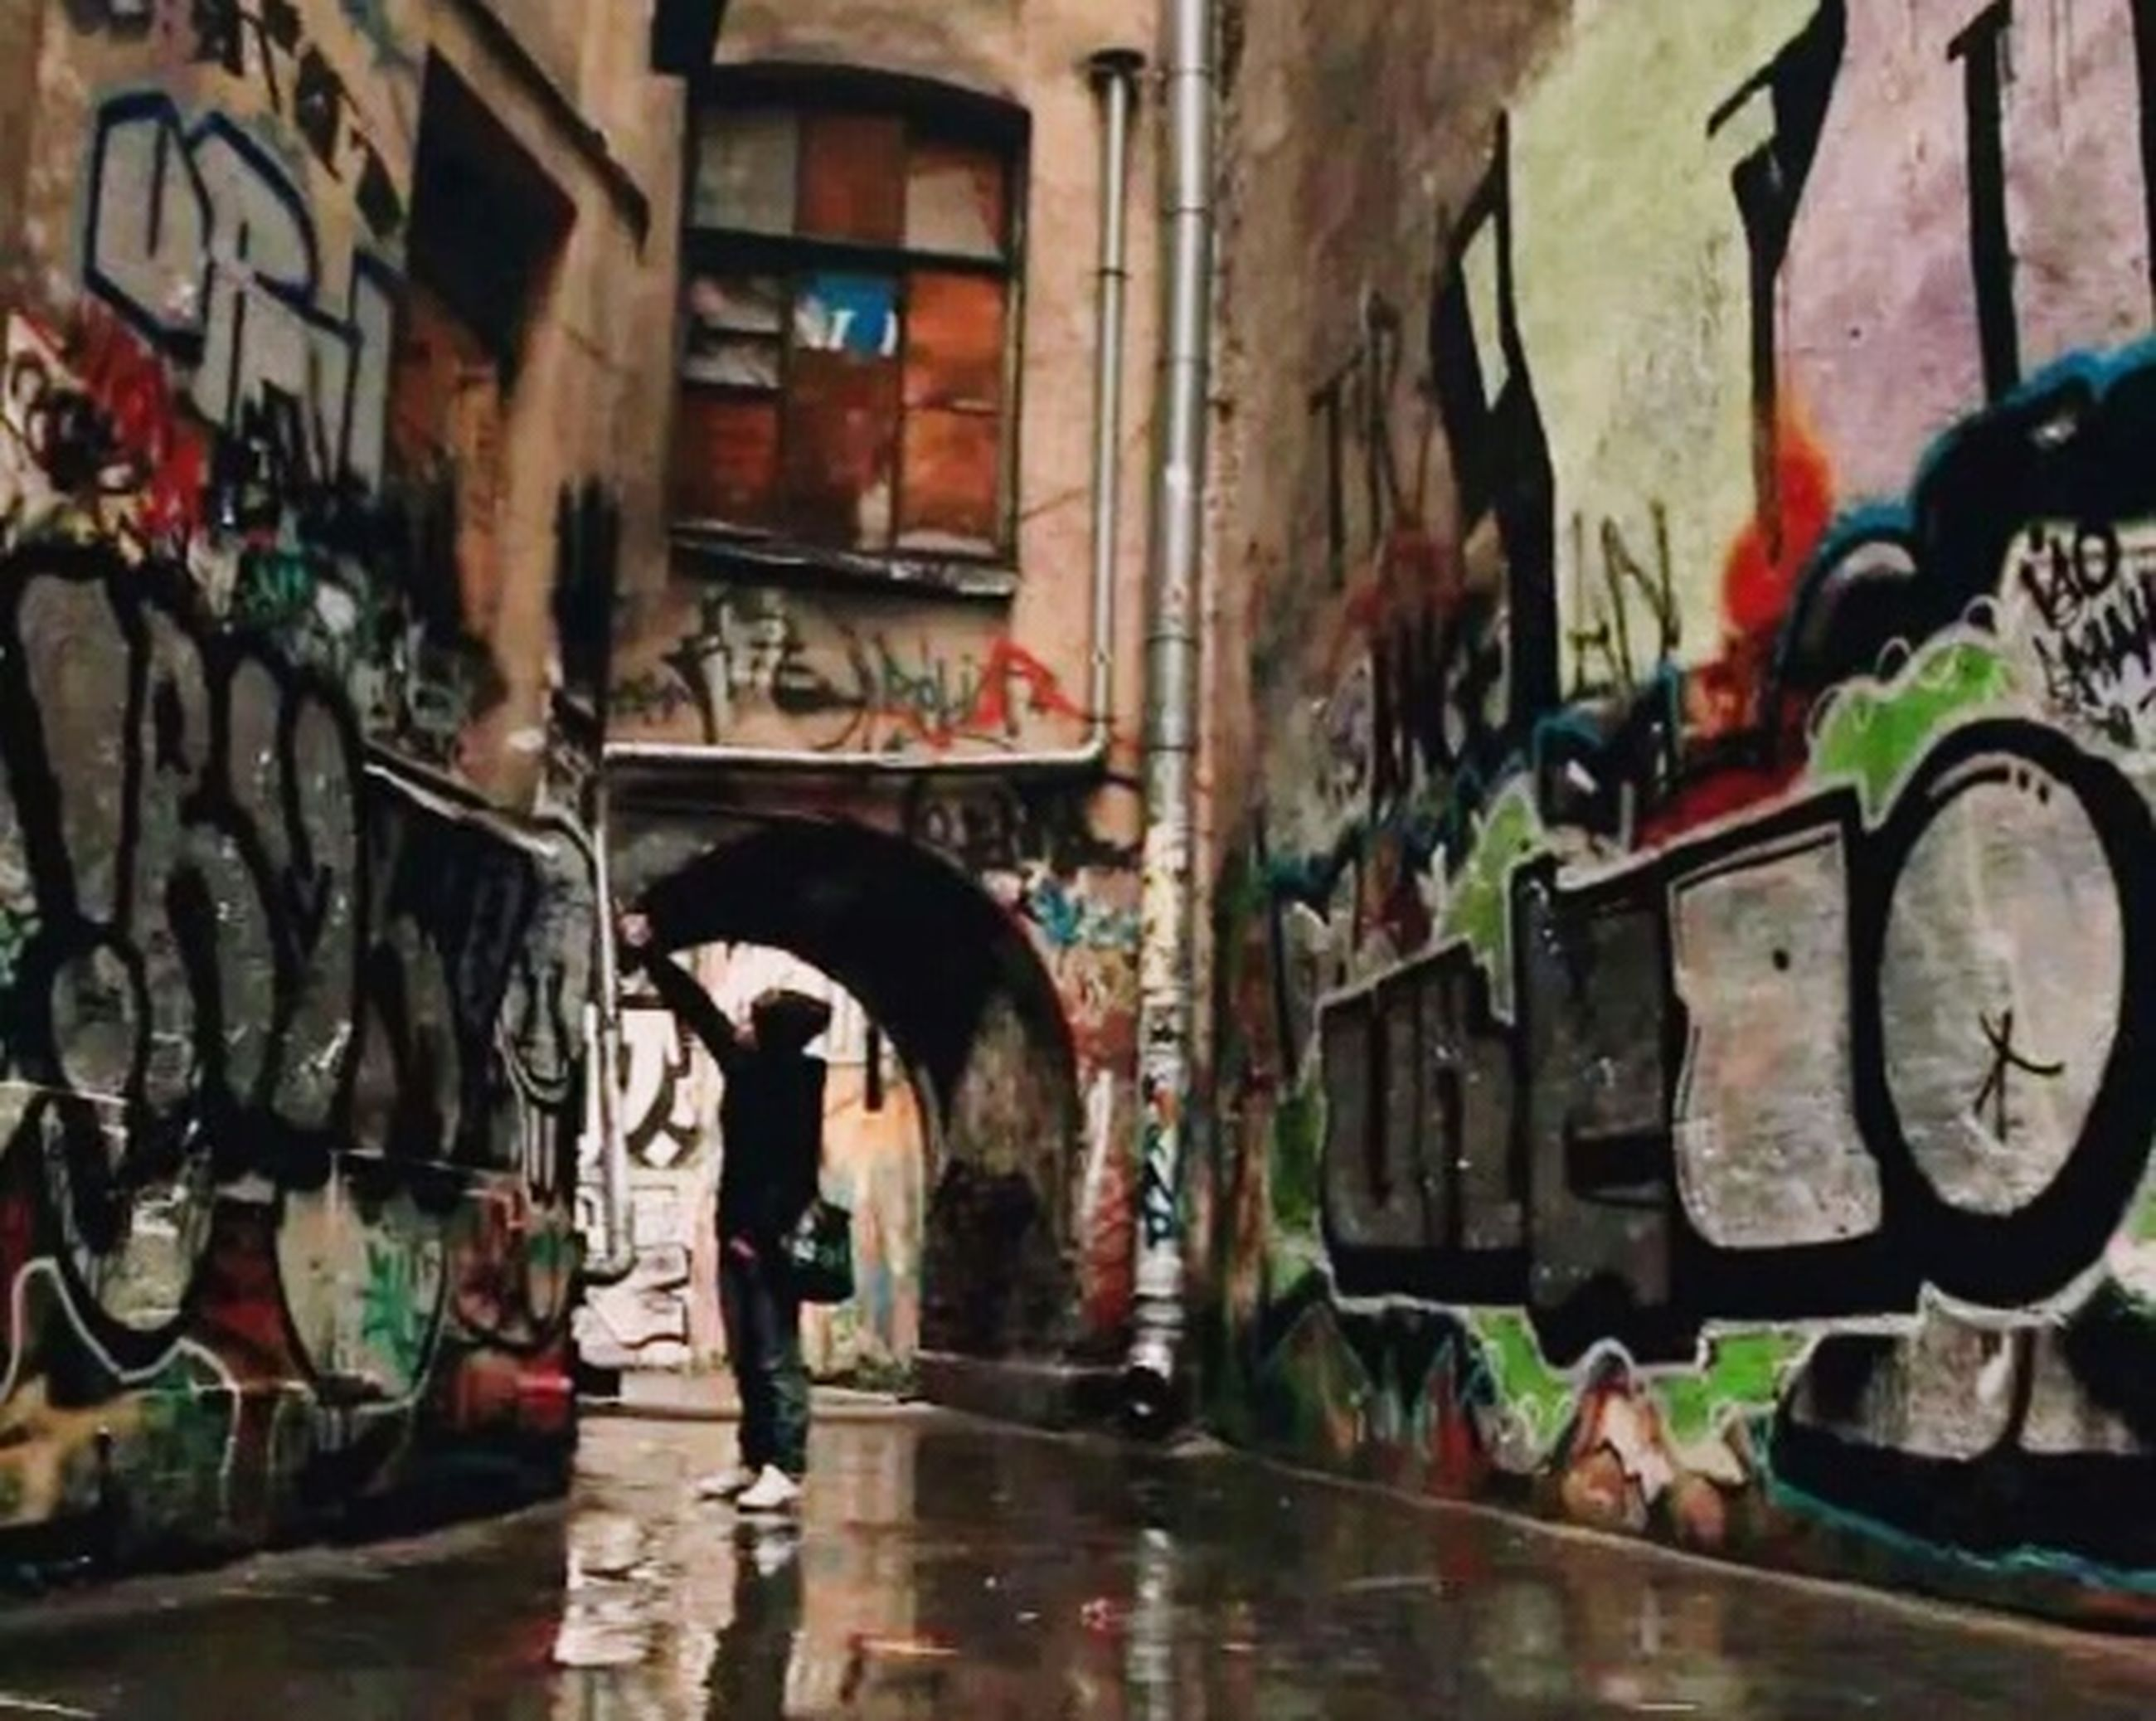 graffiti, architecture, built structure, building exterior, wall - building feature, lifestyles, street, men, wall, reflection, standing, full length, building, leisure activity, window, day, indoors